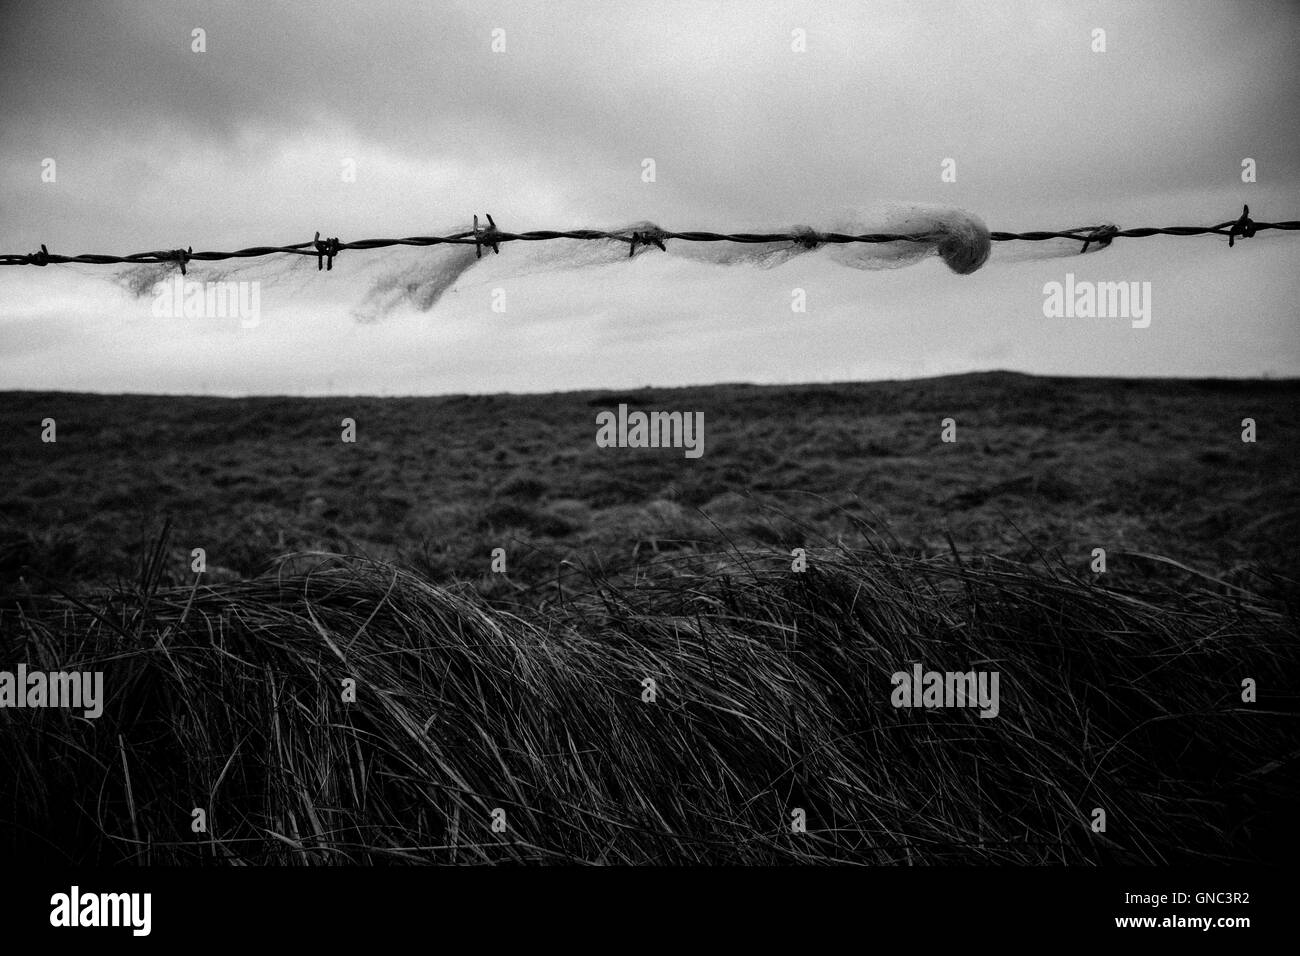 Wool Caught on Barbed Wire Fence with Rural Countryside in Background on Cloudy Day, Ireland - Stock Image